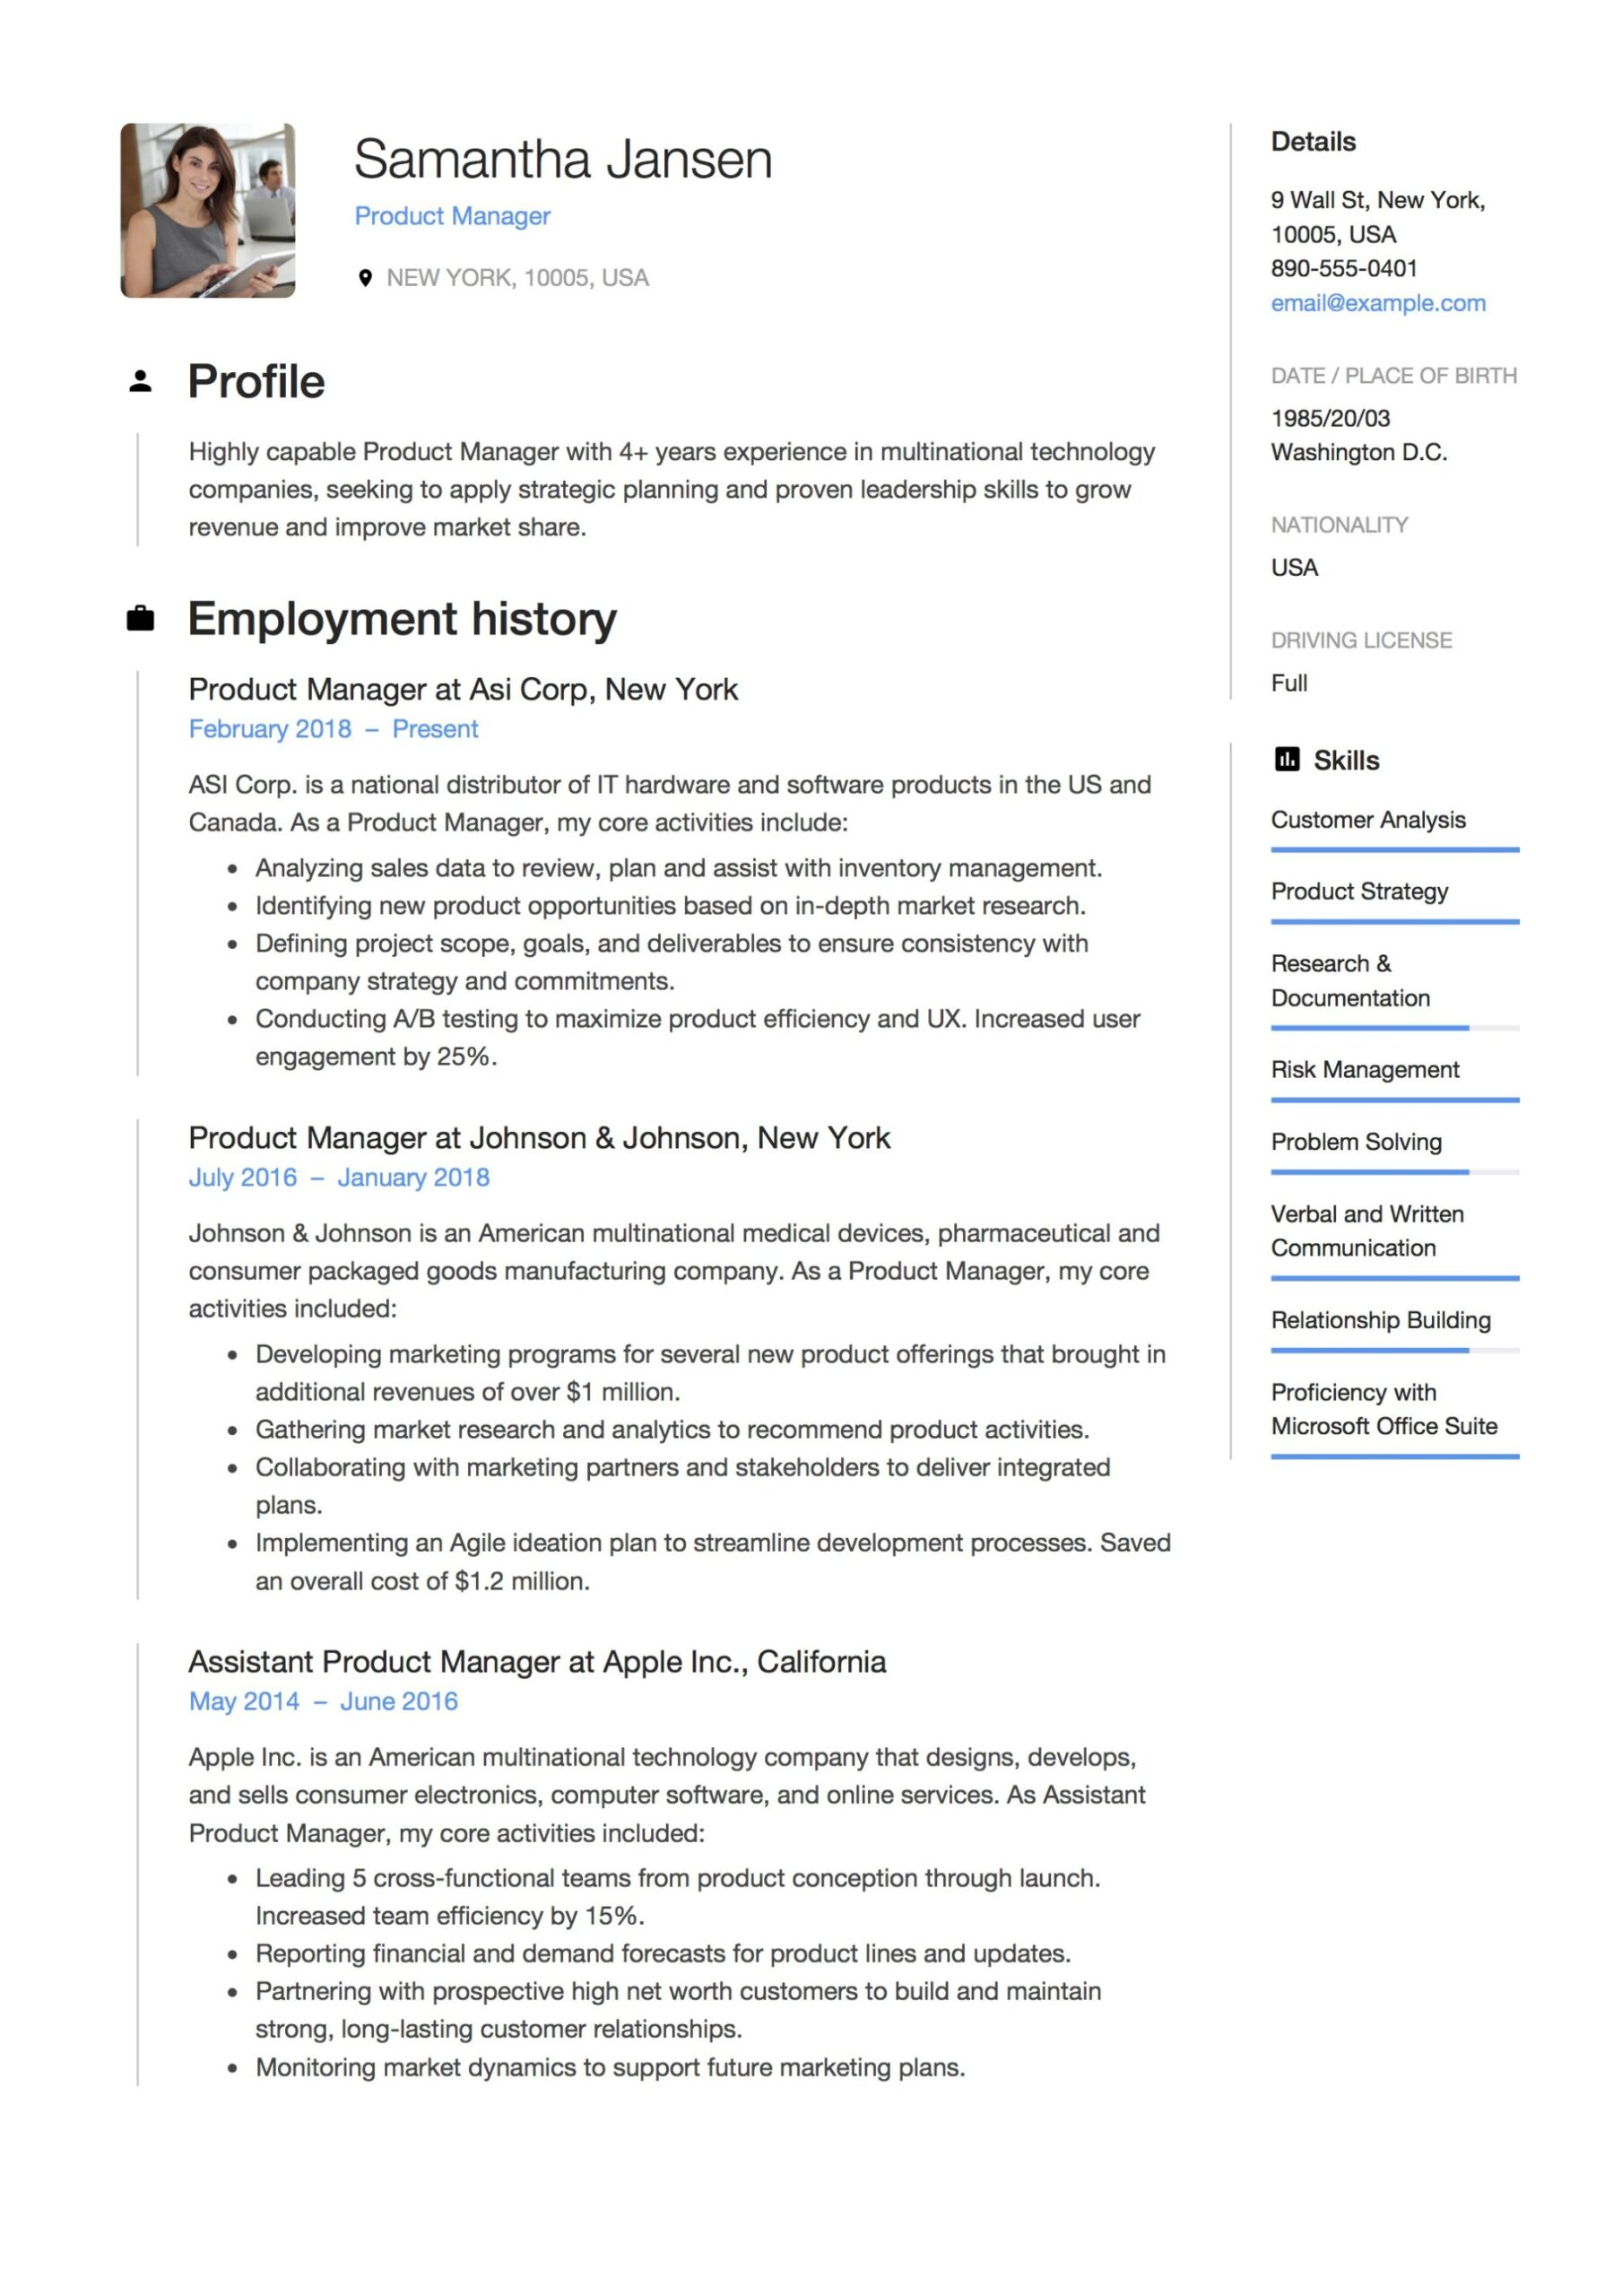 product manager resume guide samples pdf examples event responsibilities updated styles Resume Product Manager Resume Examples